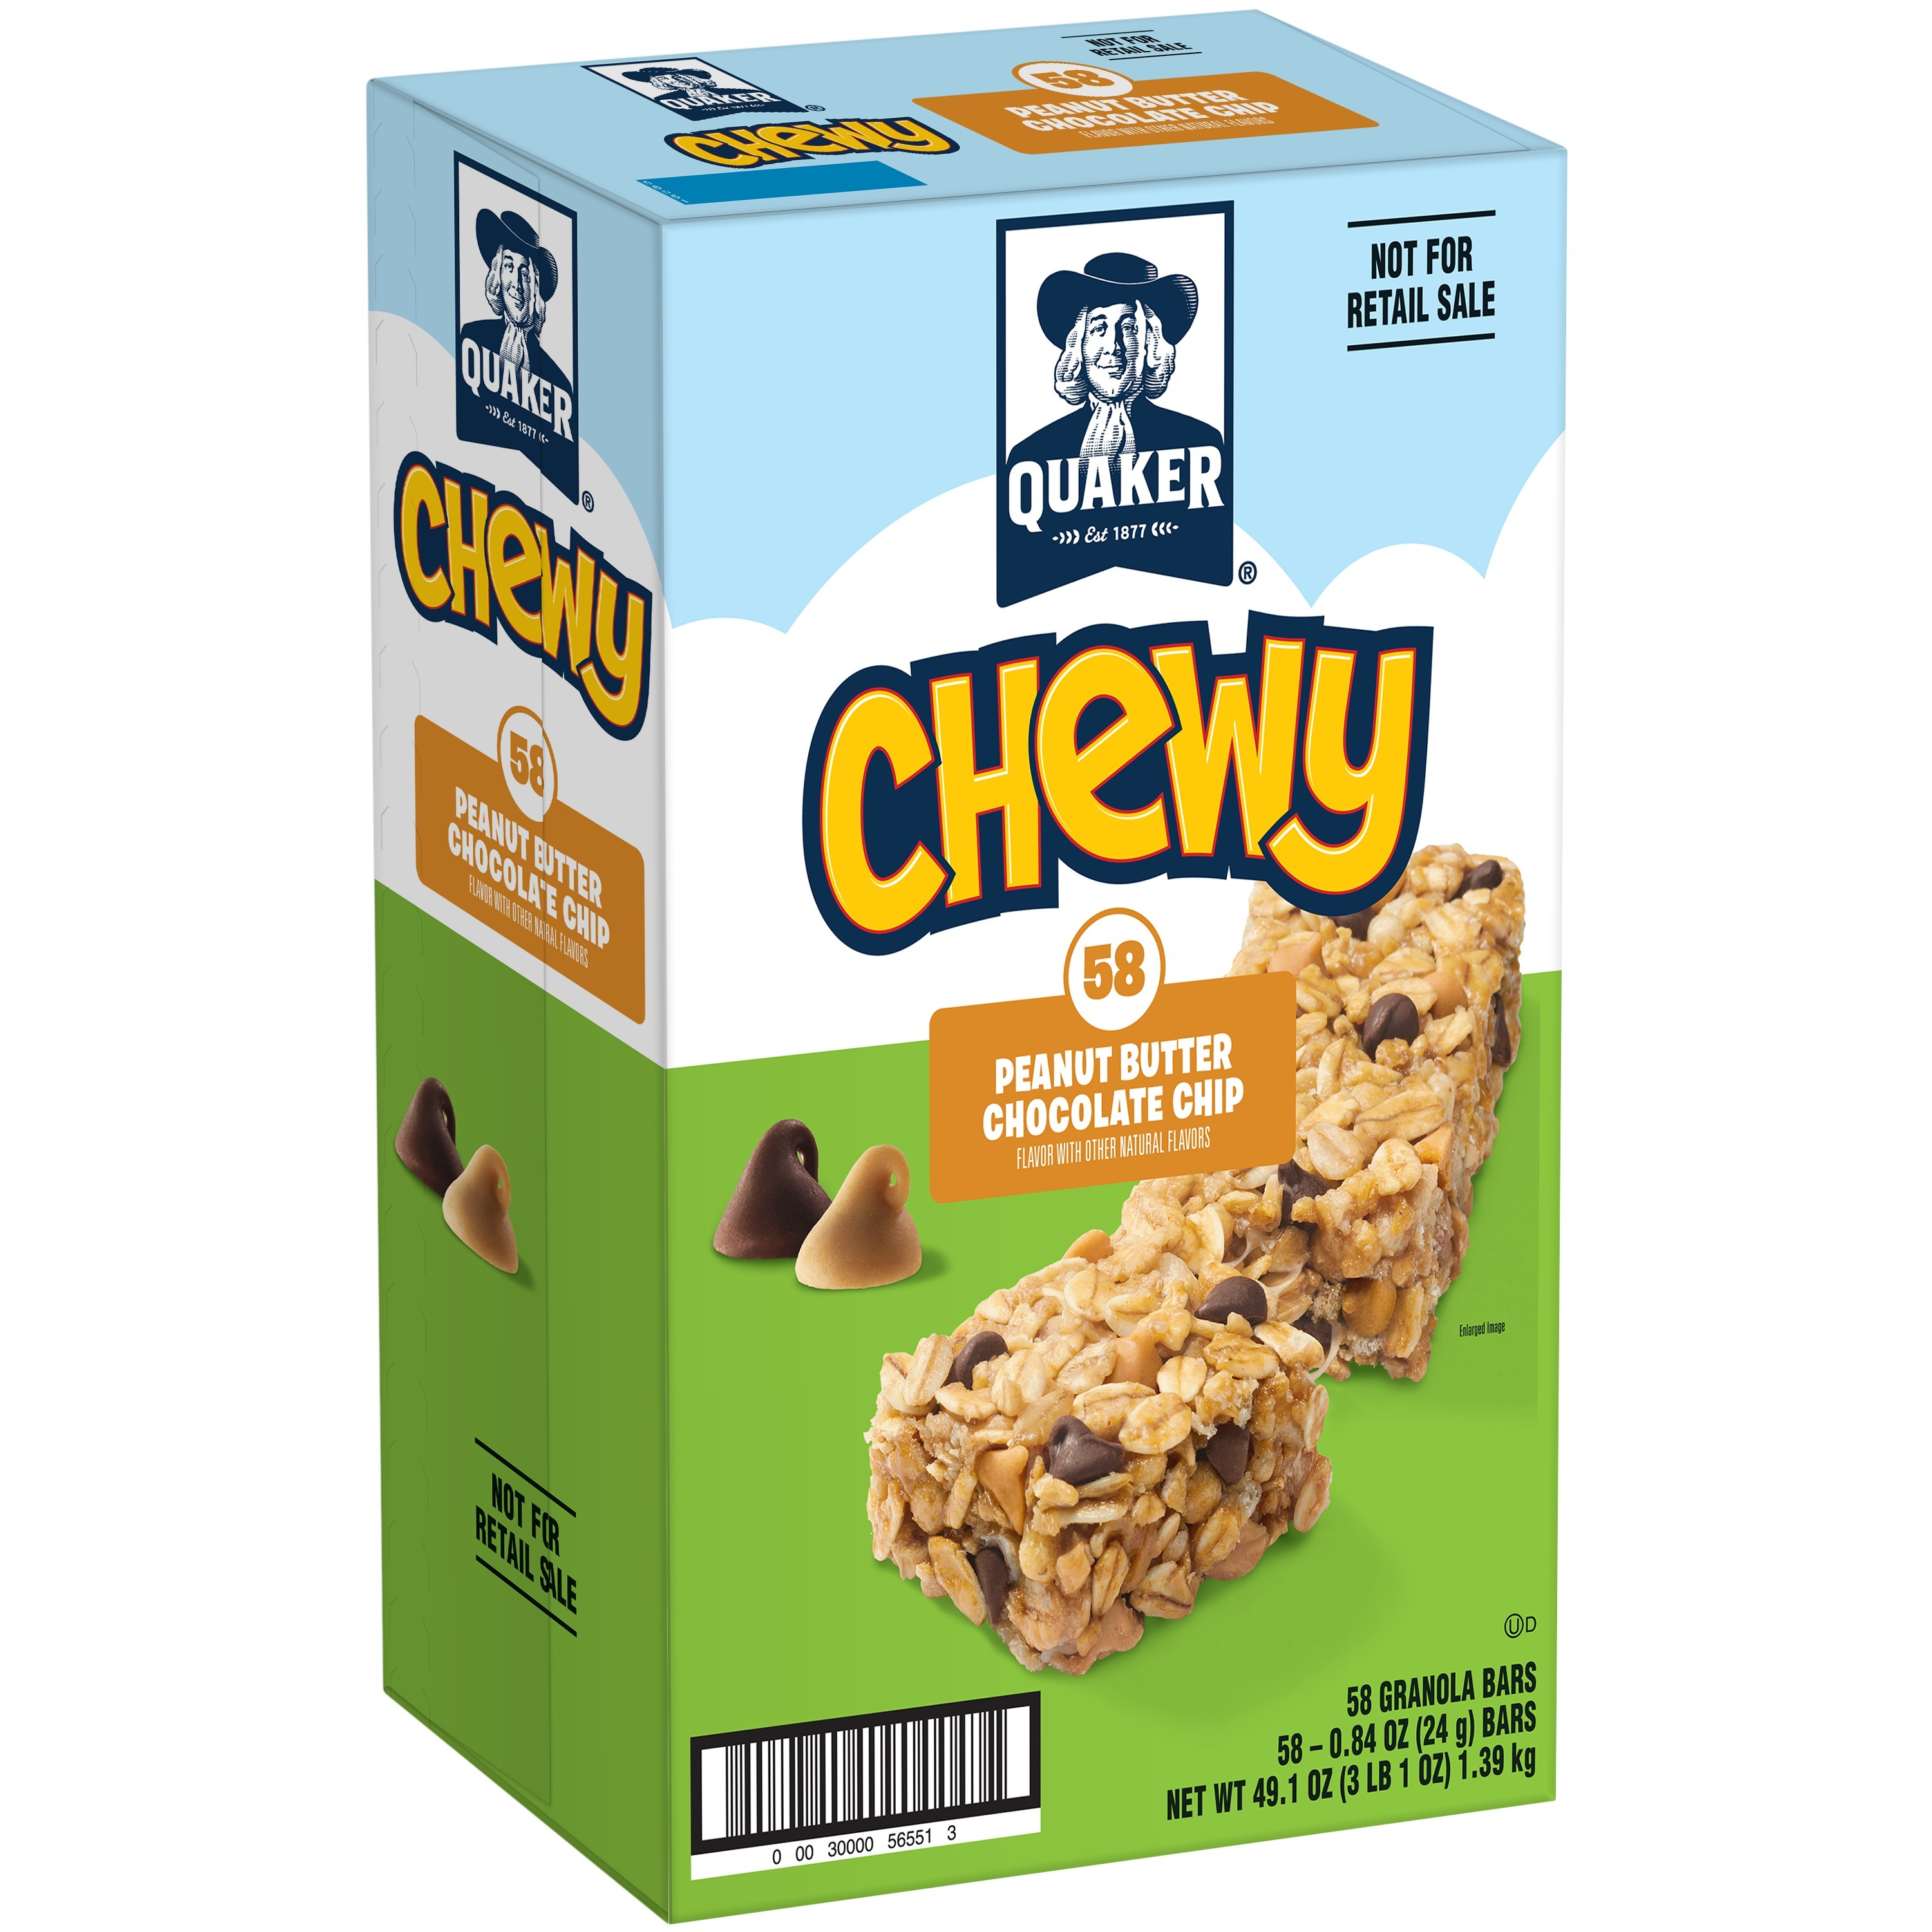 Quaker Chewy Granola Bars, Peanut Butter Chocolate Chip, 58 Count